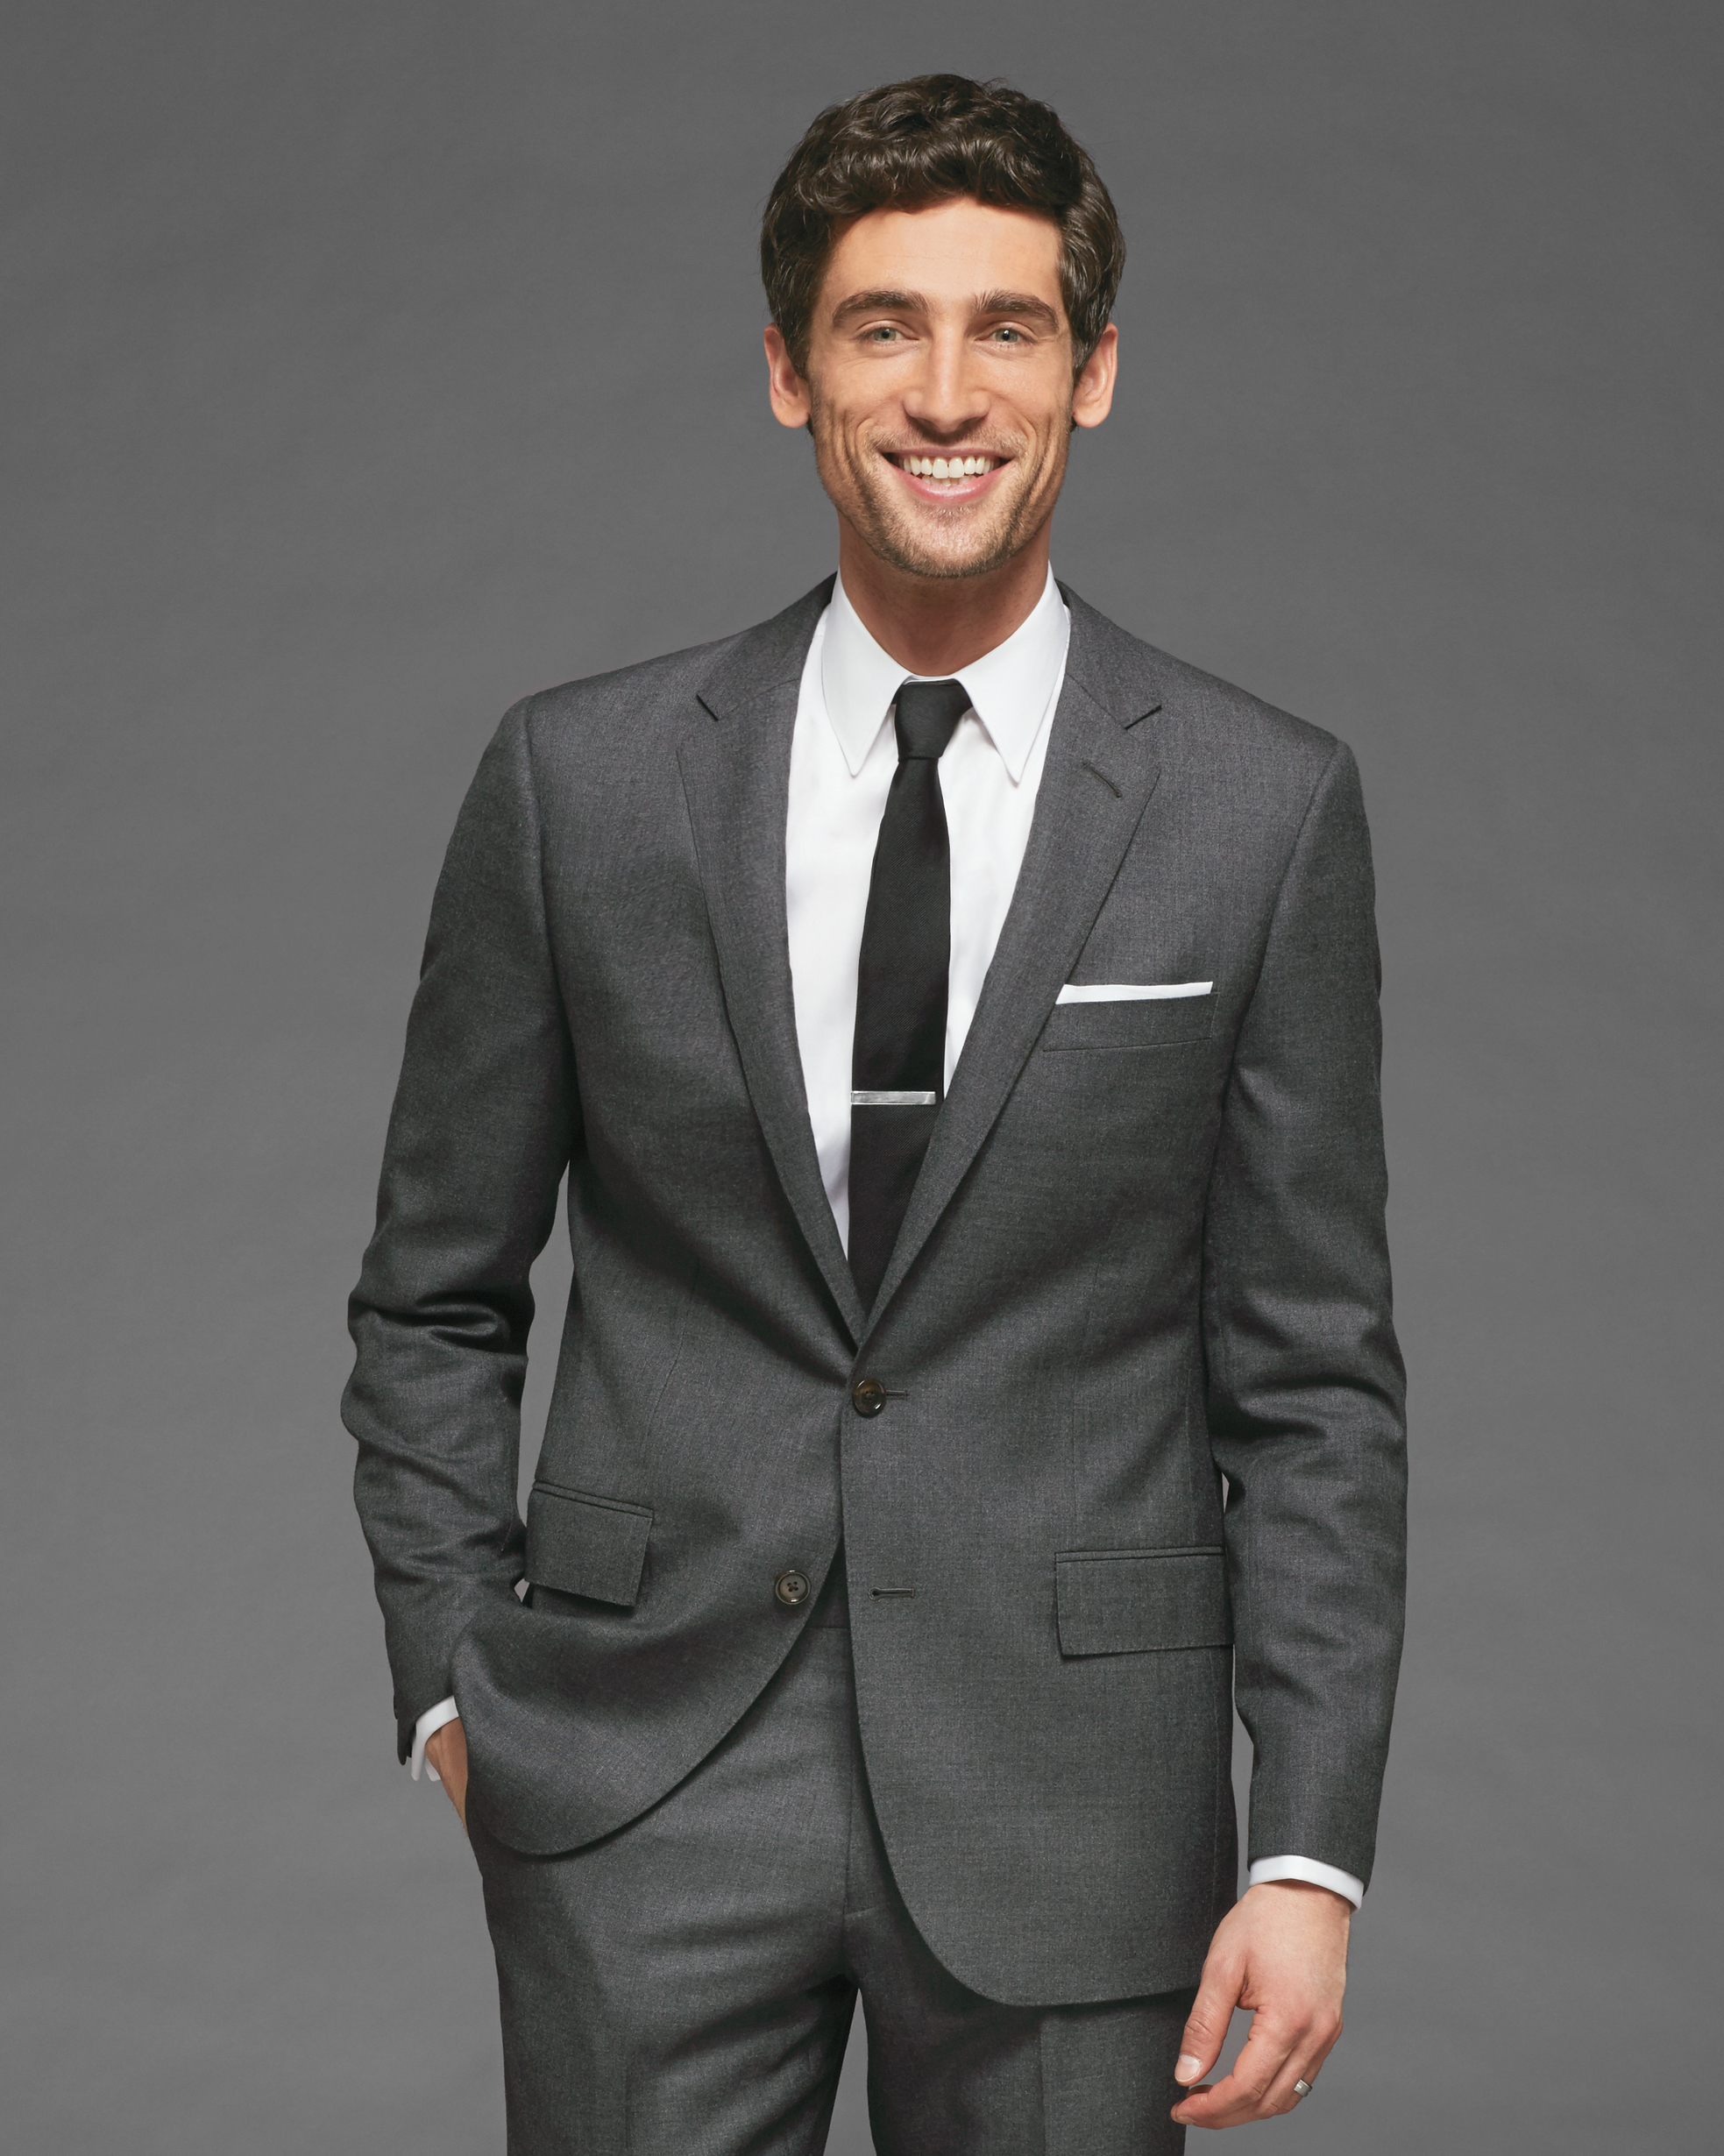 12 Best Fall Suits for the Groom